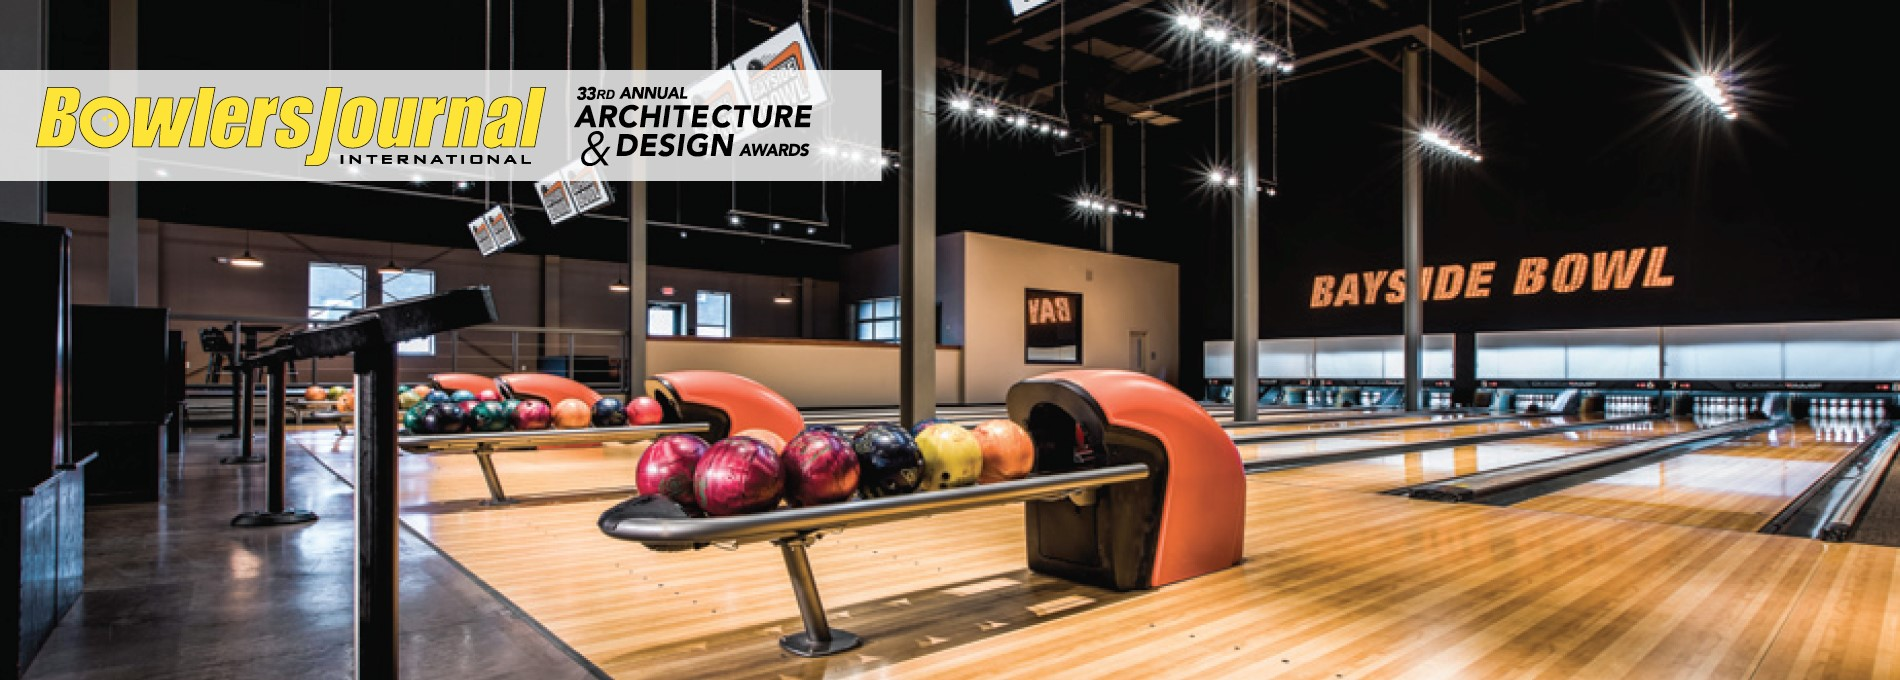 qubicaamf-bowling-33rd-architecture-and-design-awords-banner-Bayside-BOWL